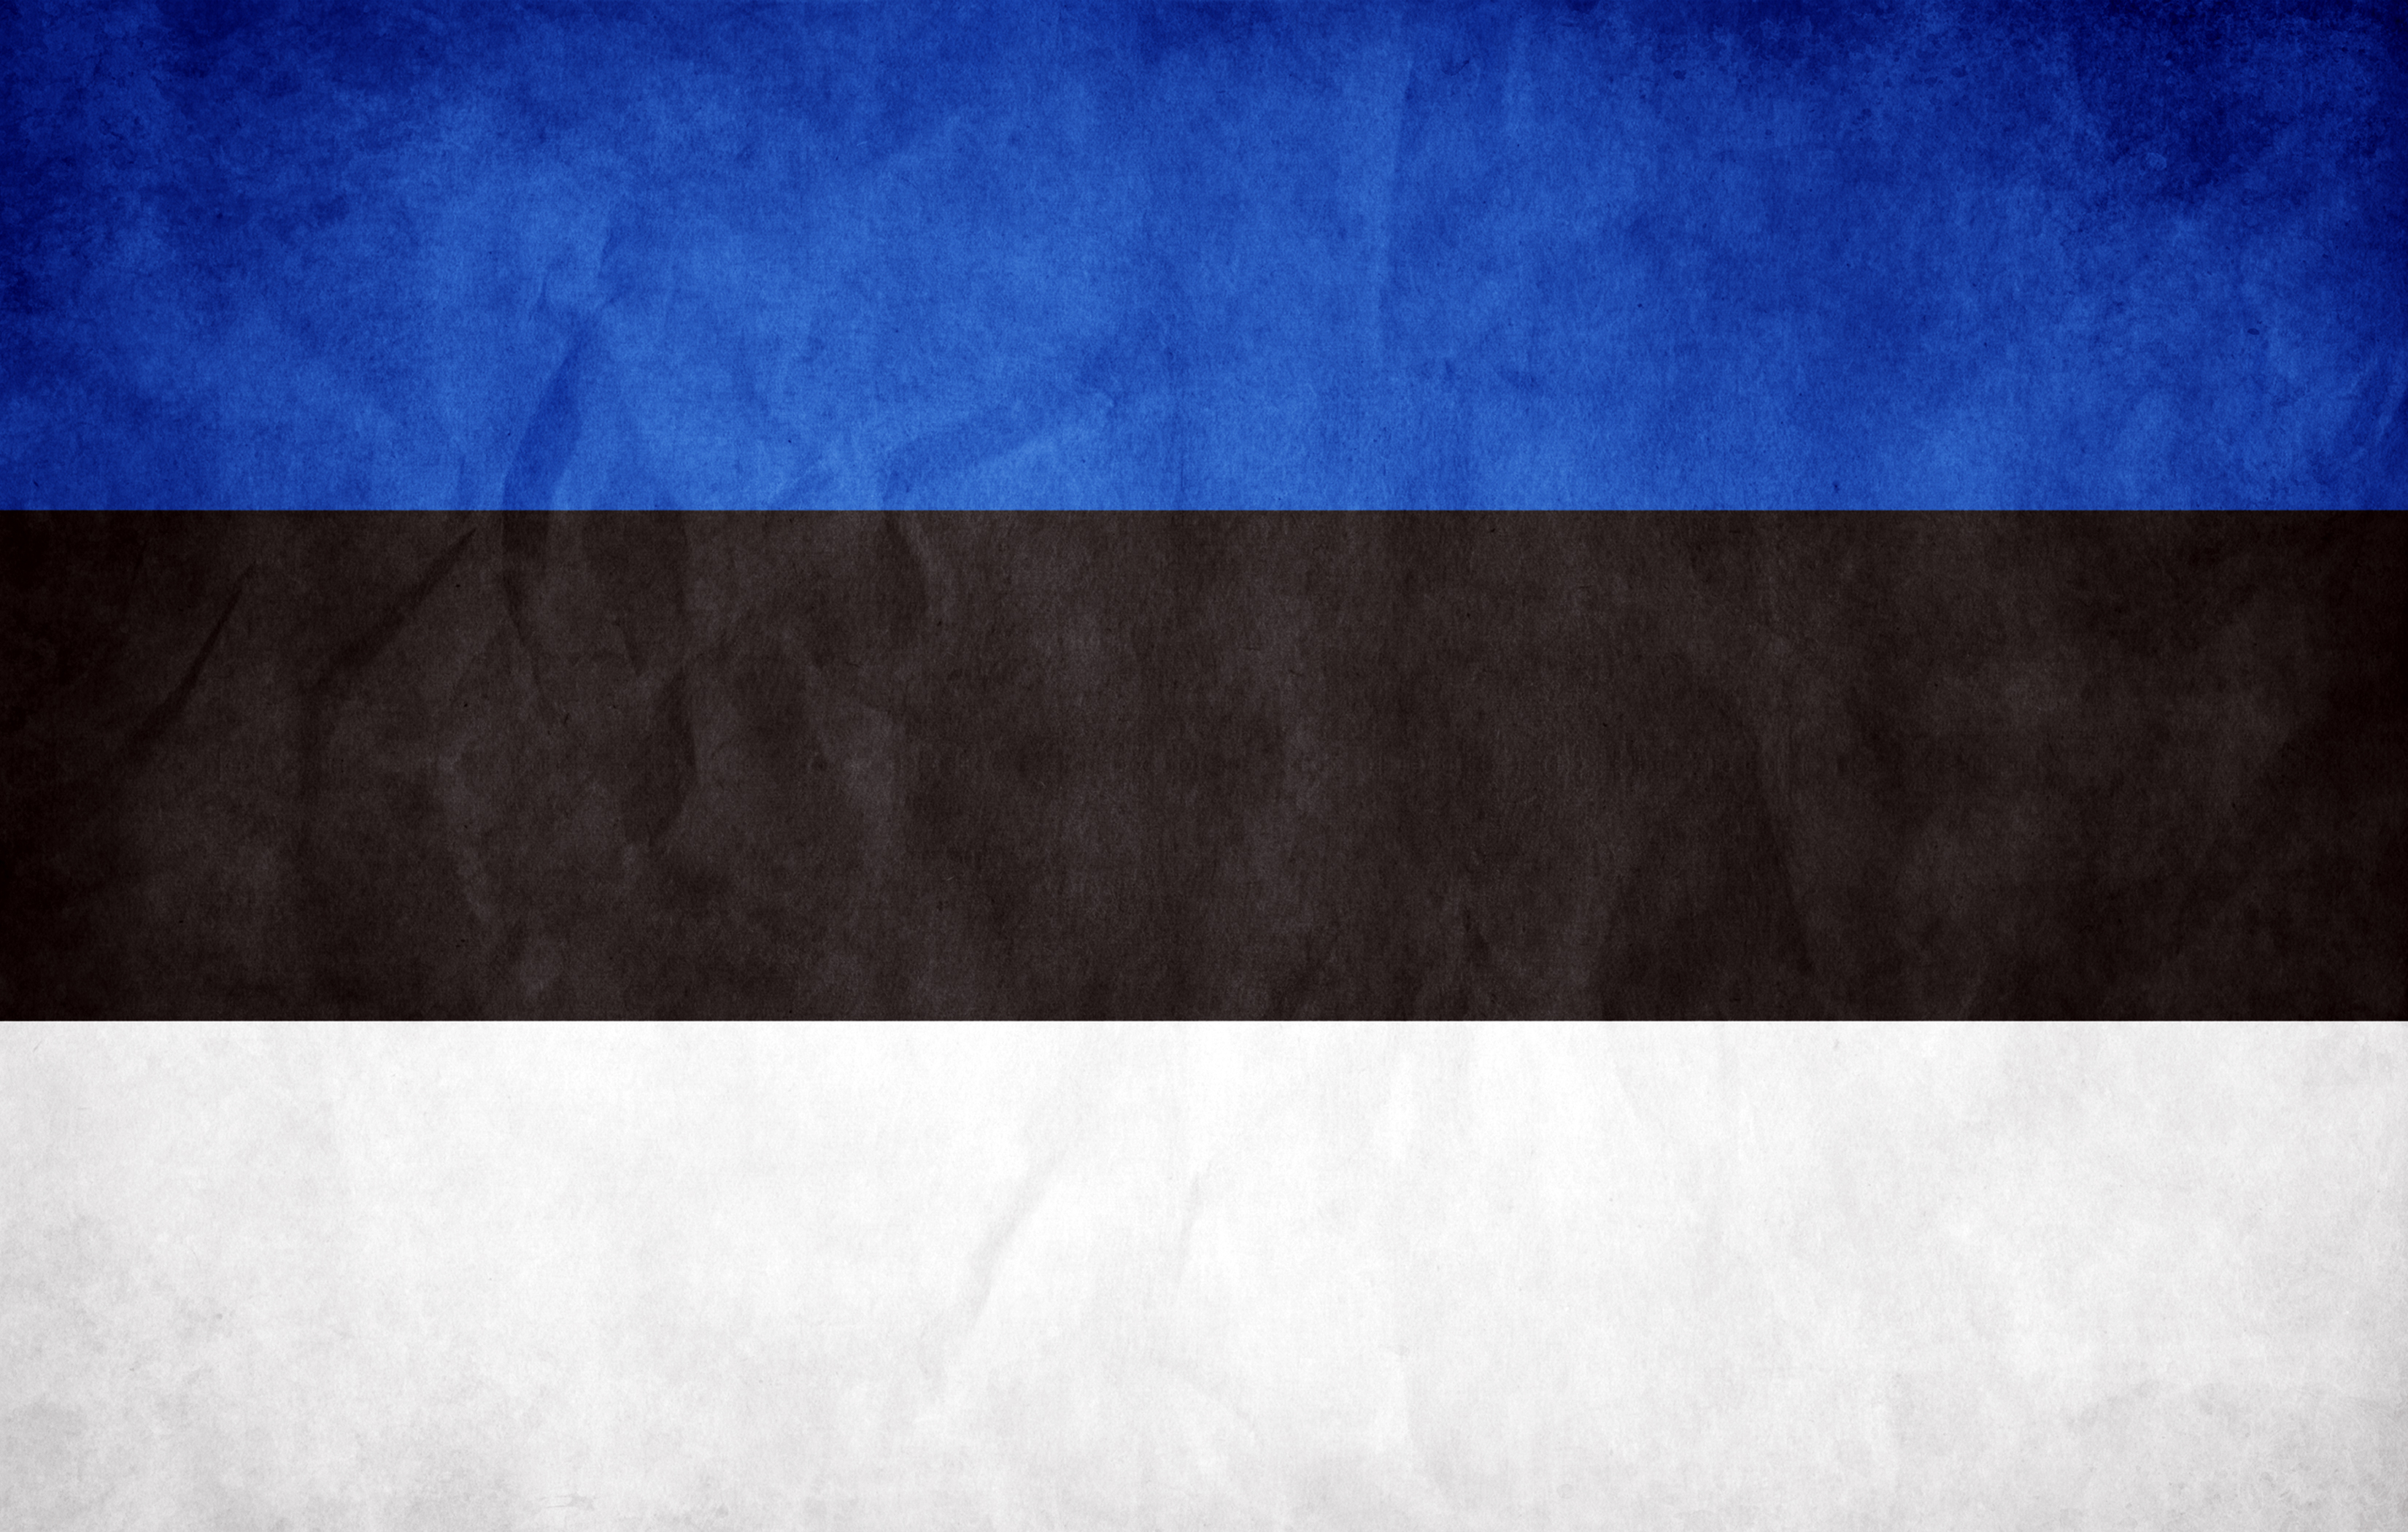 Estonia flag wallpaper | 3300x2100 | 10590 | WallpaperUP